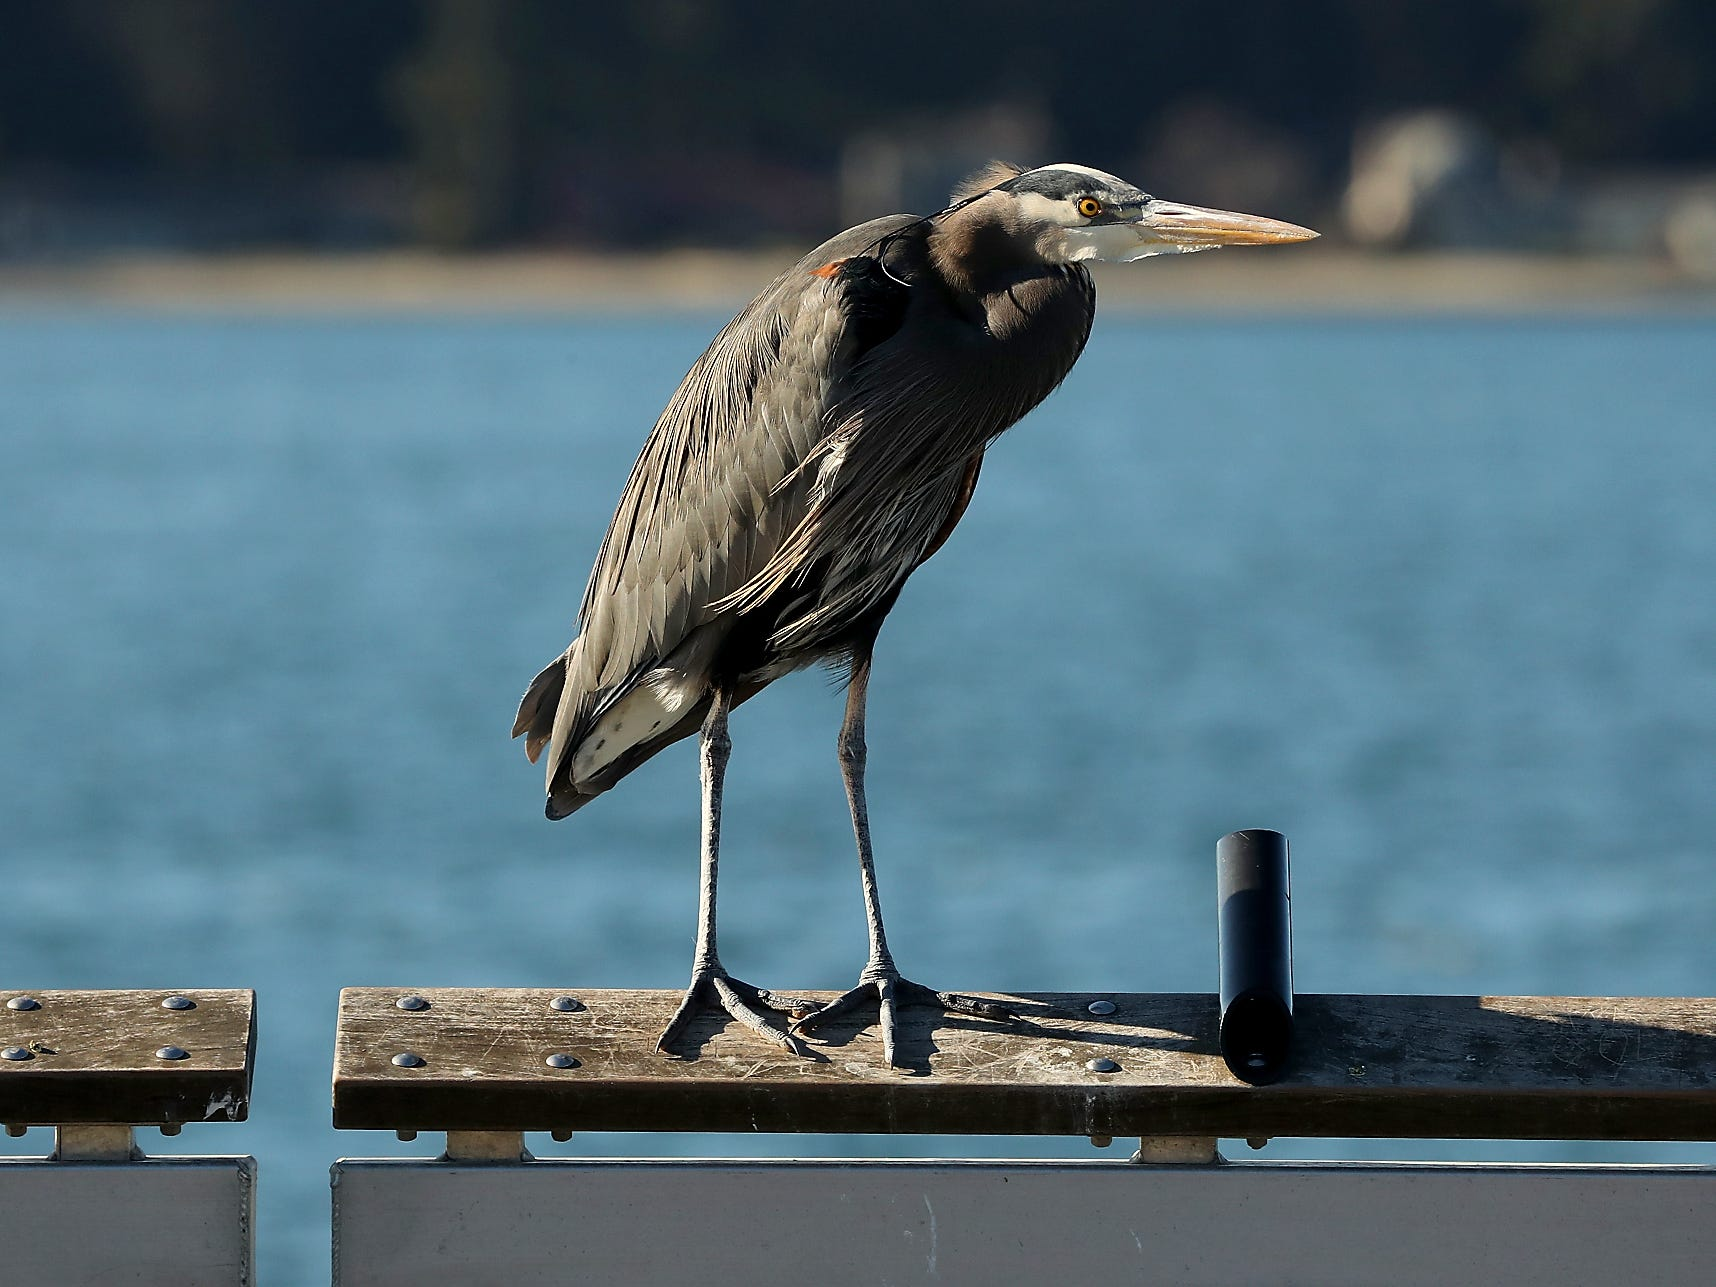 A great blue heron perches on the railing of the Waterman Pier in Port Orchard on Tuesday, March 5, 2019.